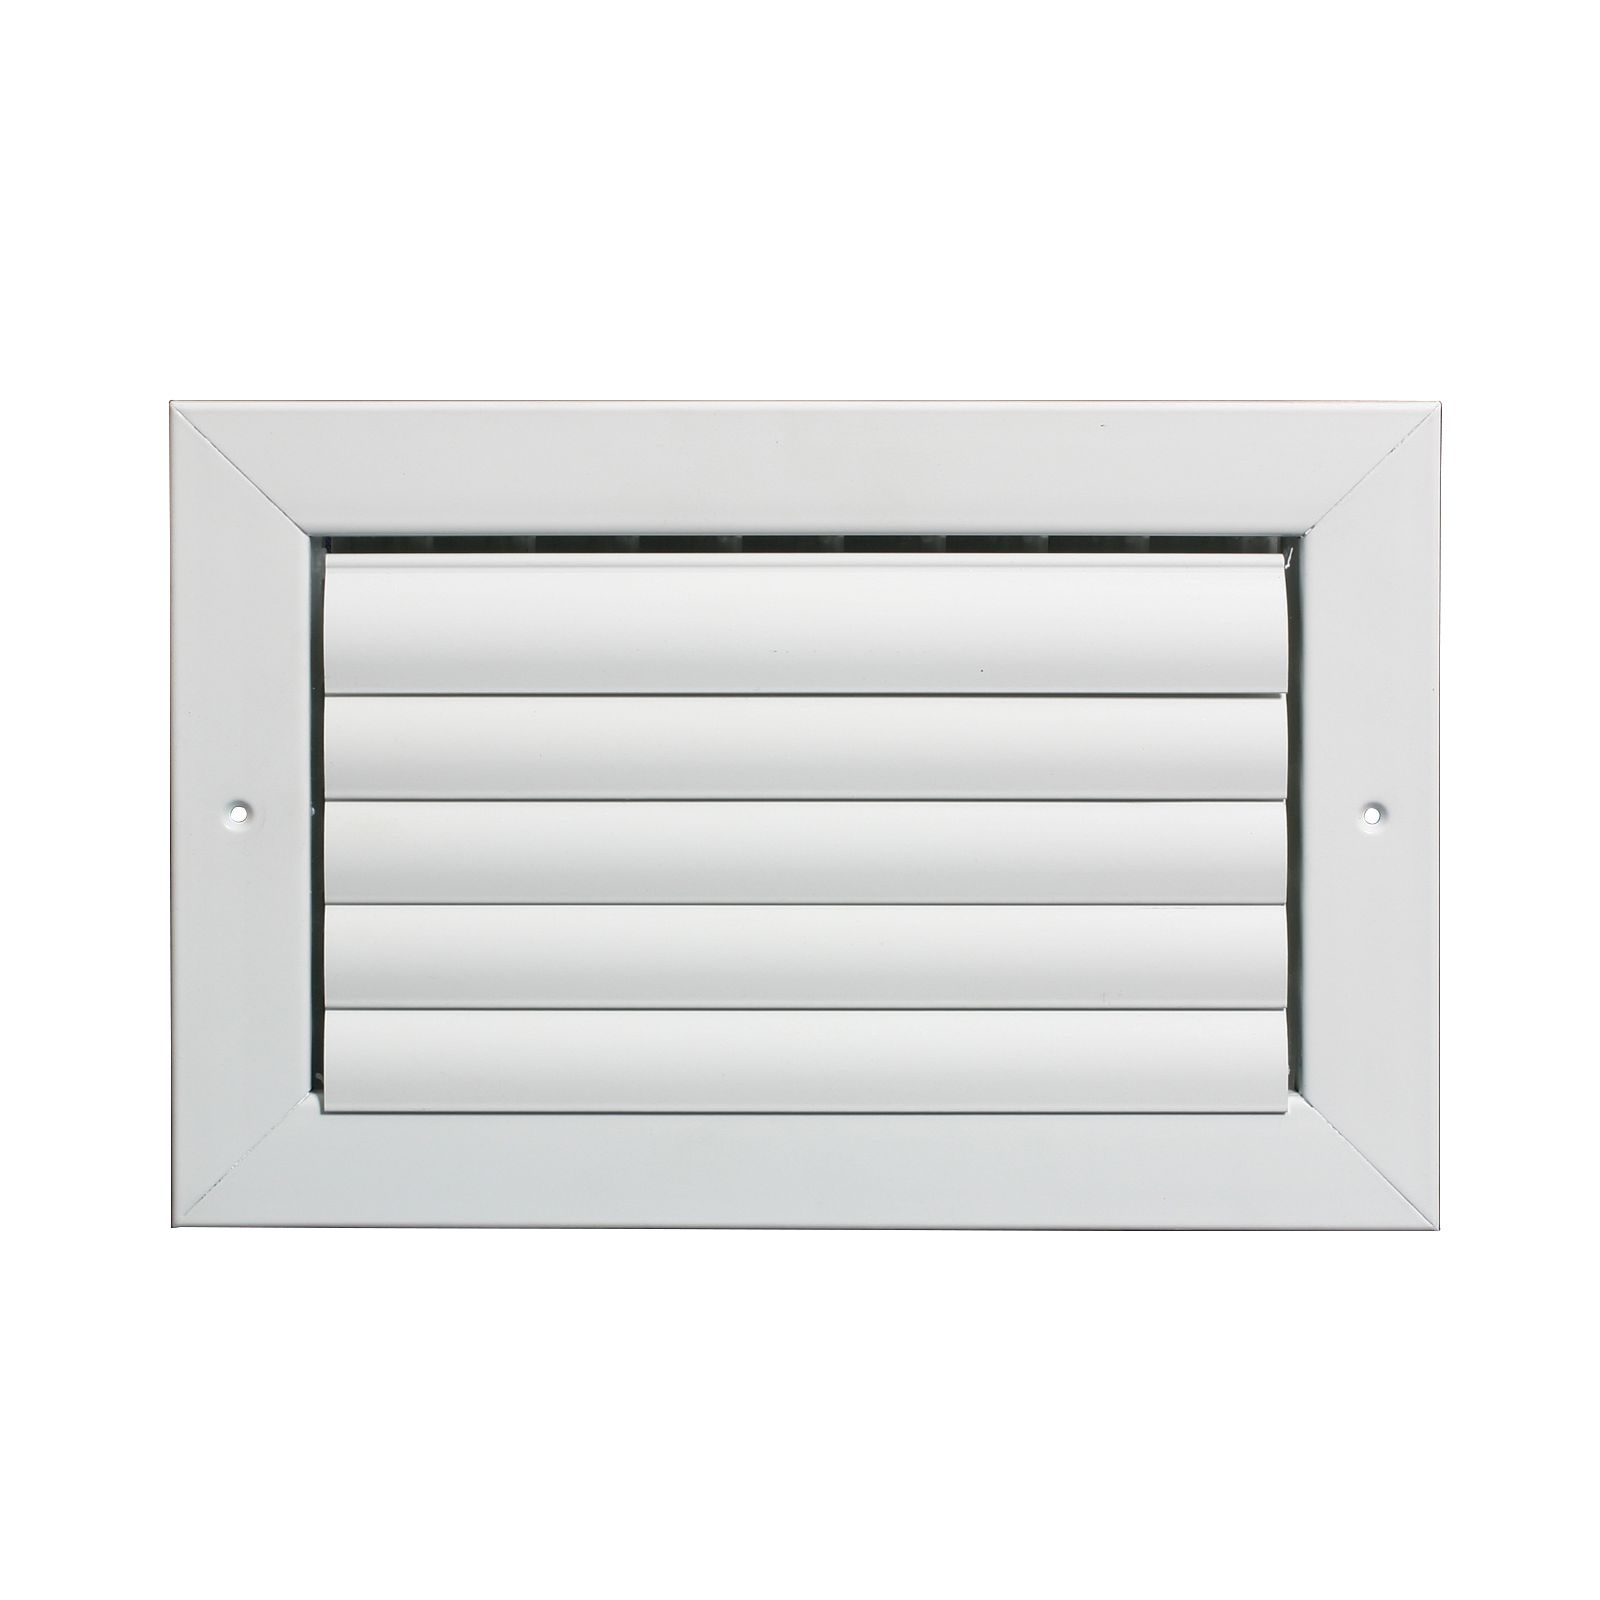 "Grille Tech CL1M0804 - Aluminum Ceiling 1-Way Deflection Supply, Multi-shutter 8"" X 4"" White"